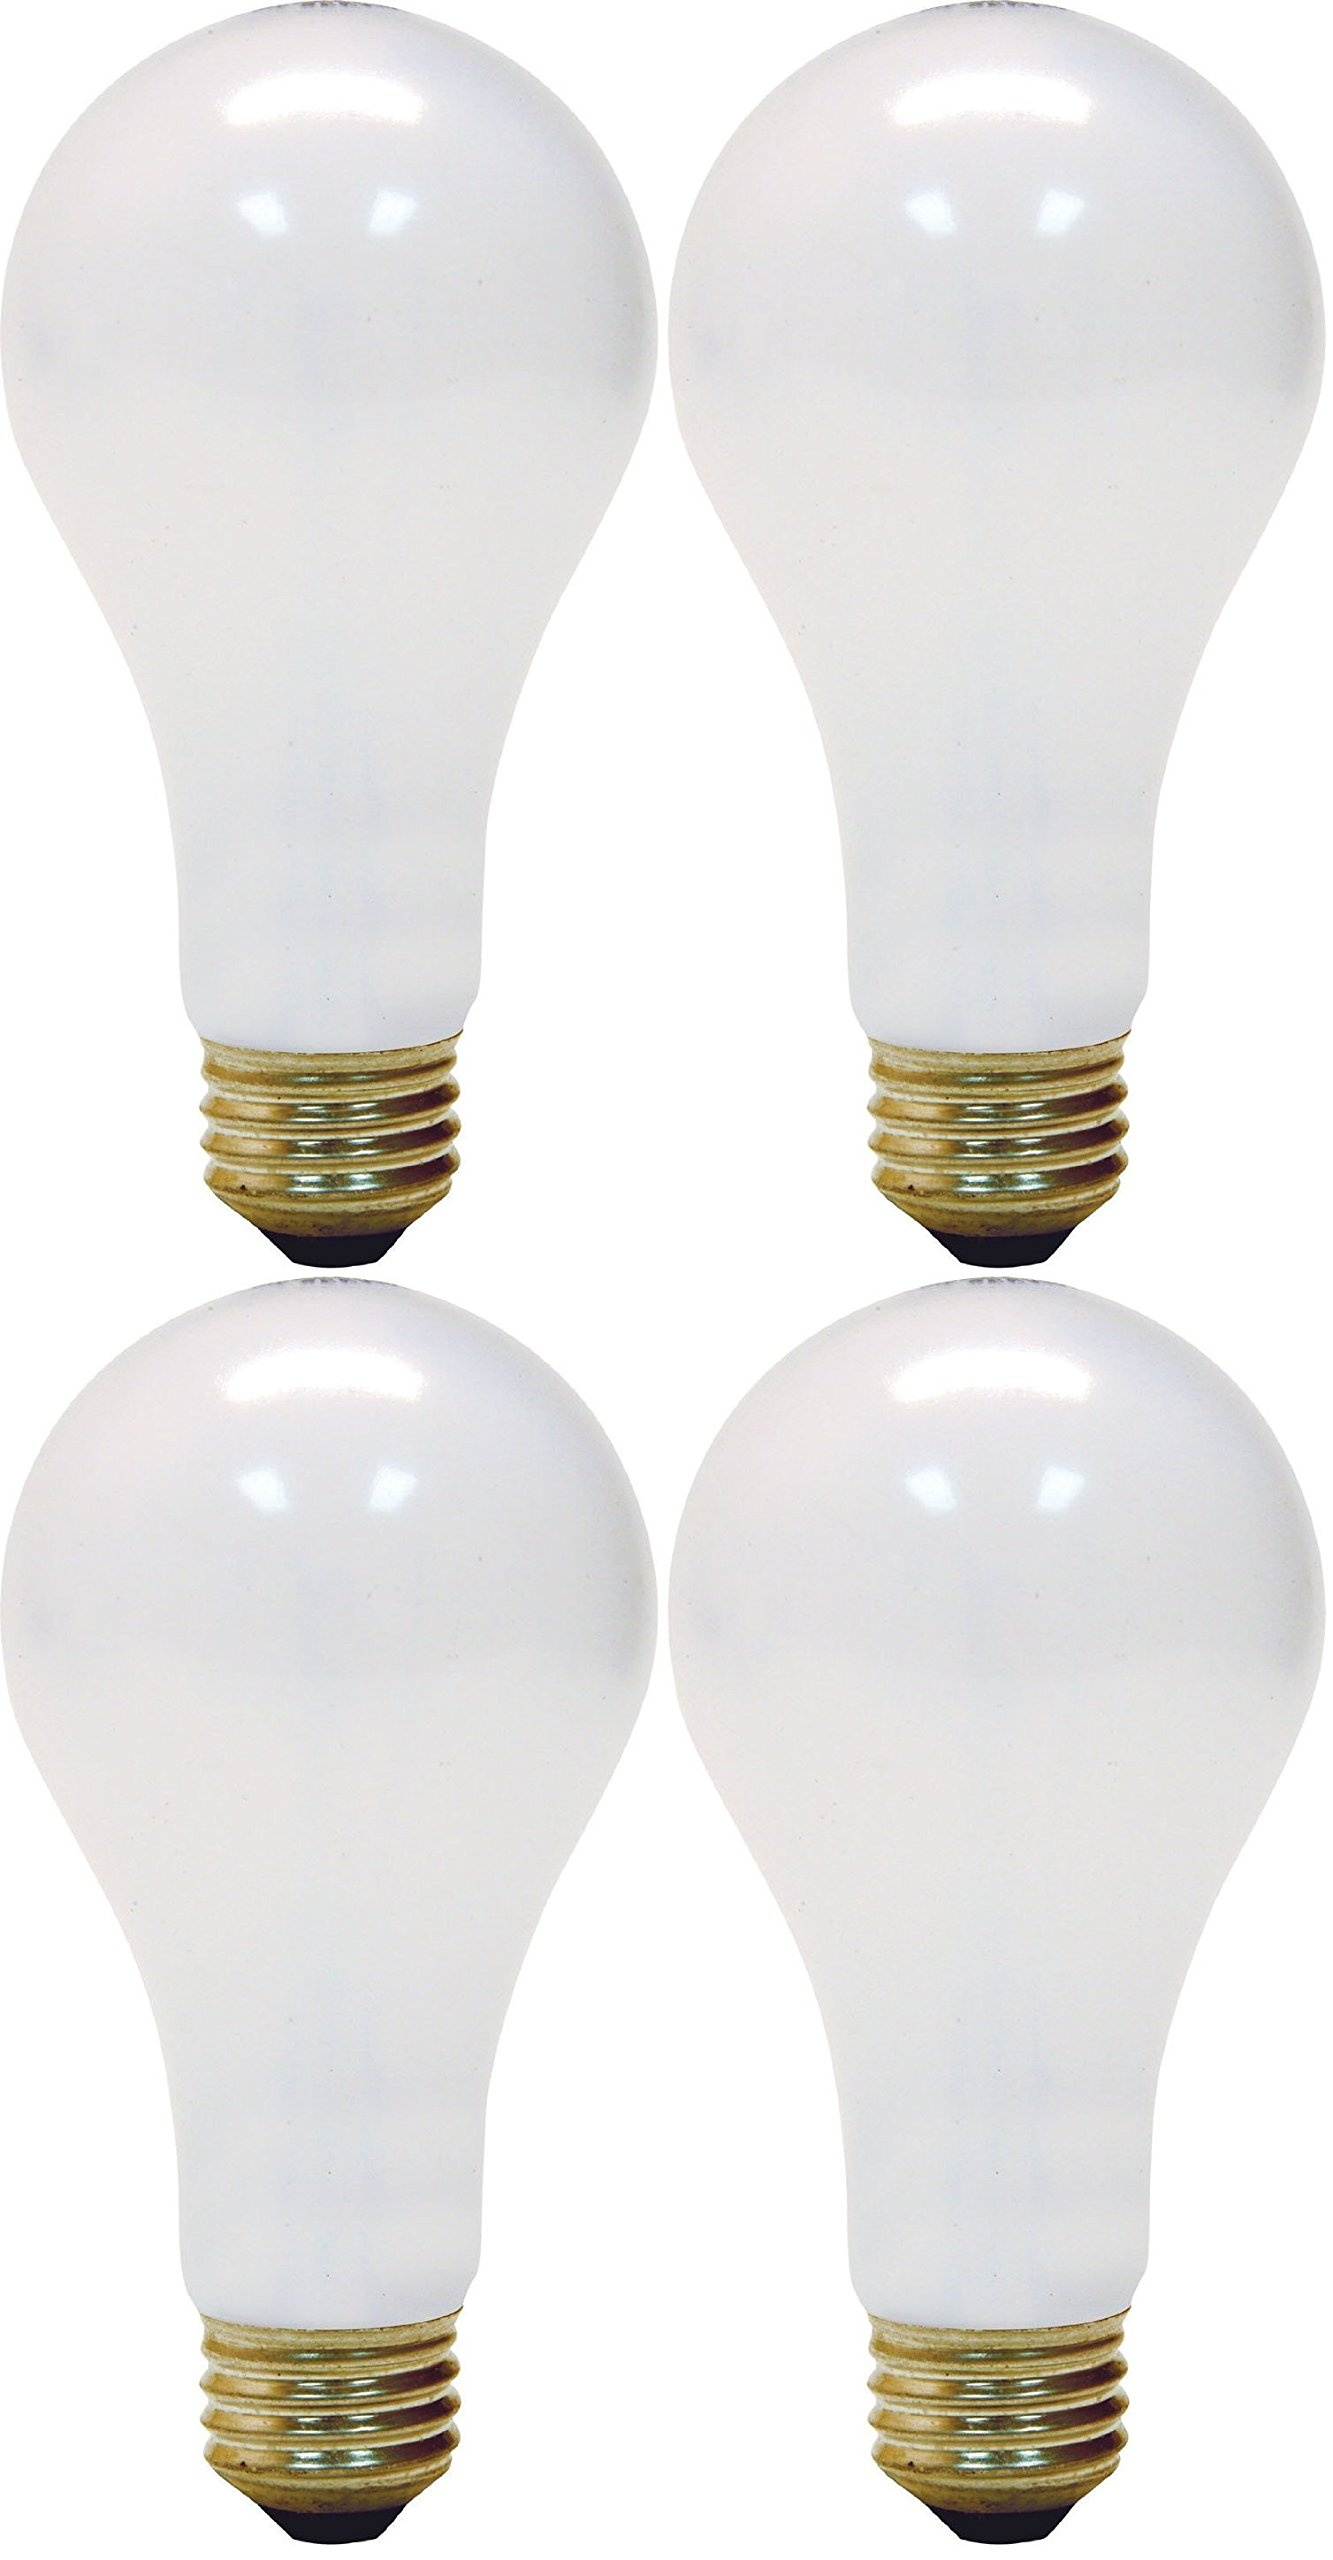 Ge lighting 3 way 50 200 250 soft white light bulb pack of 4 4 pack ebay 3 way light bulbs